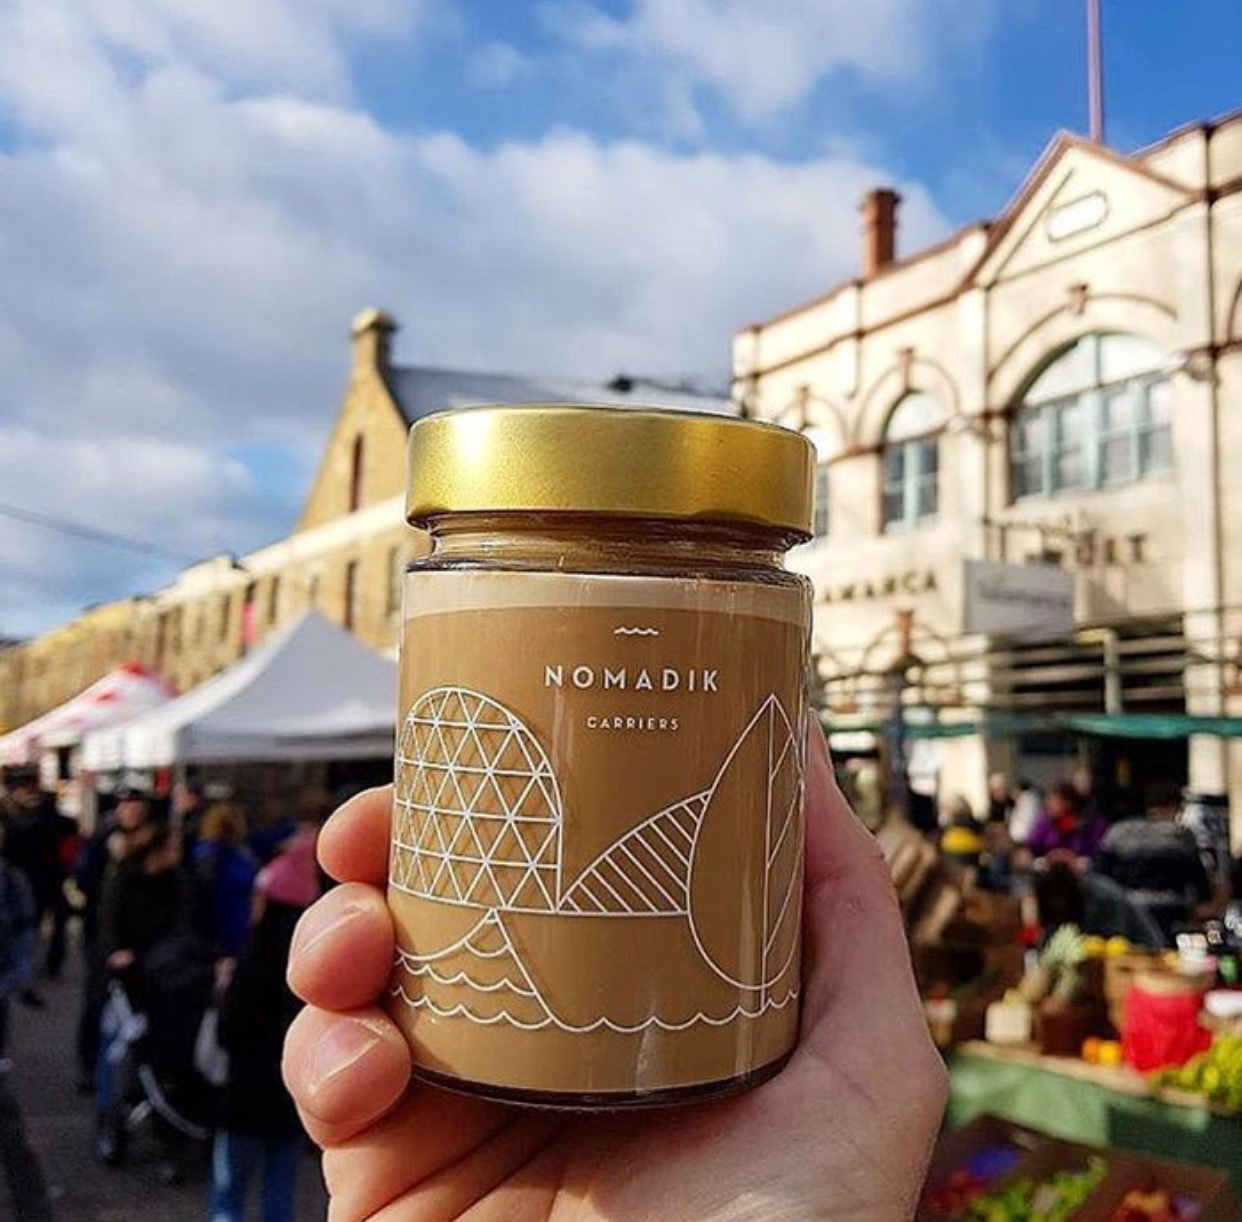 Nomadik Carriers Reusable Coffee Cup